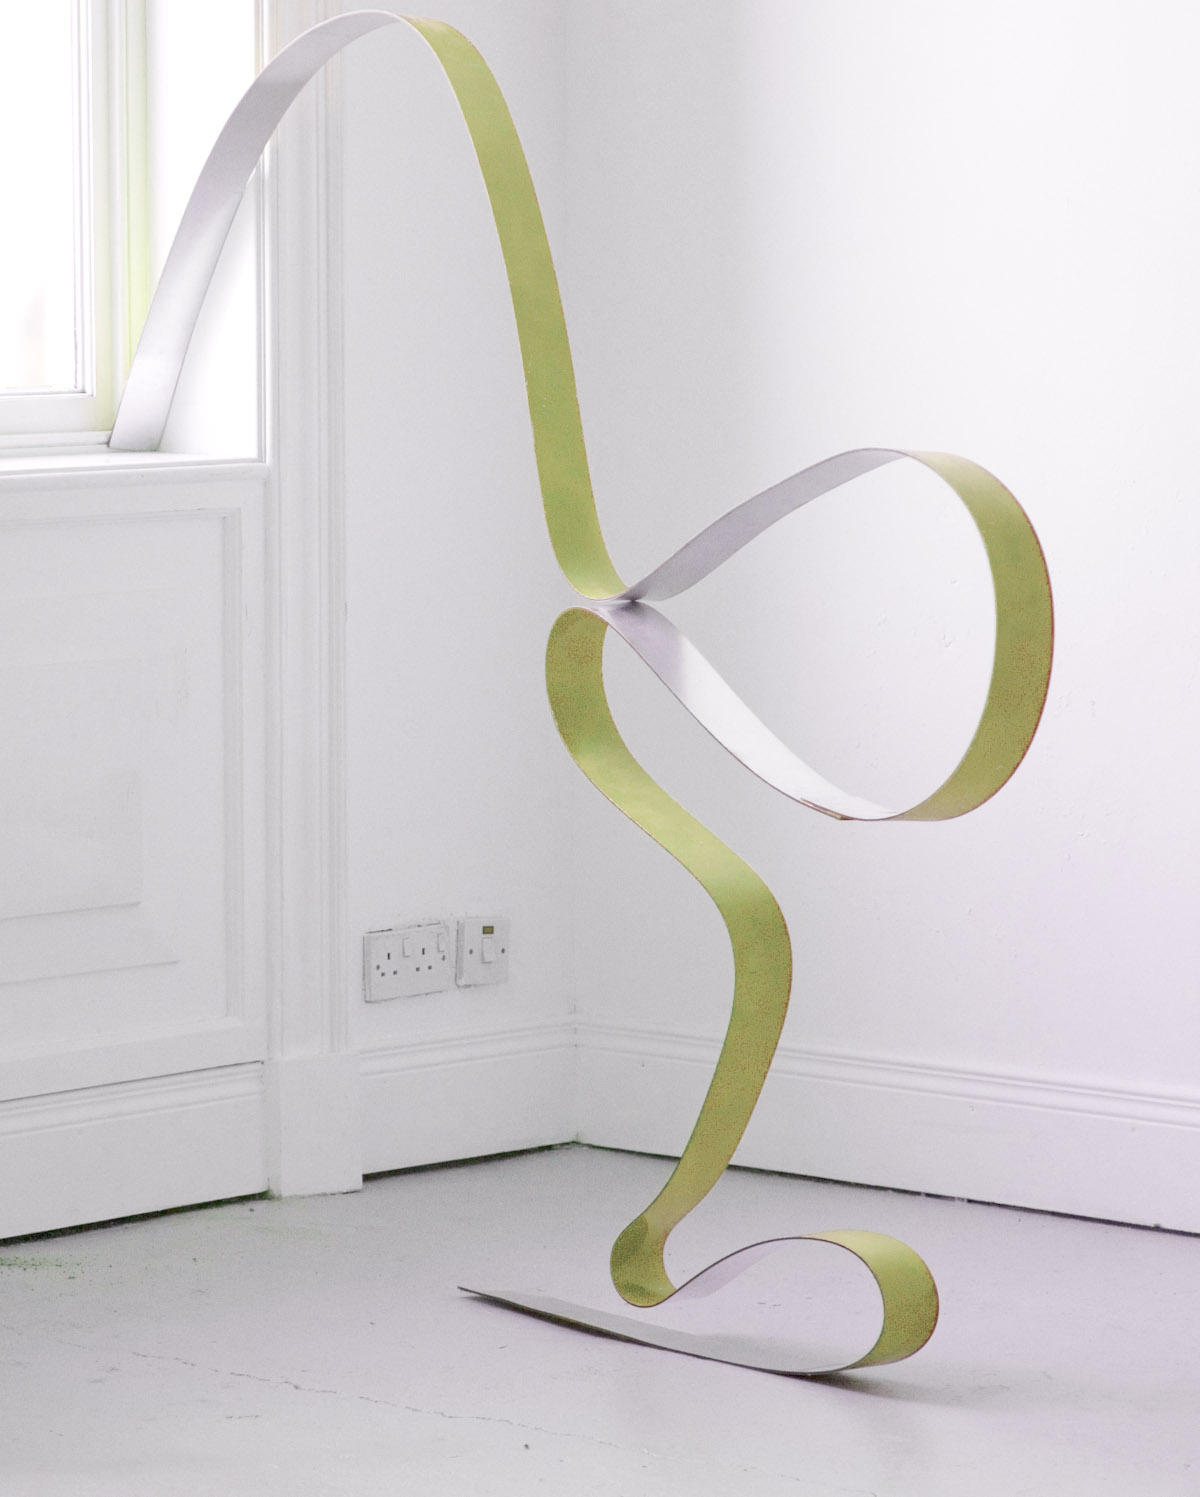 Sinead McKeever Notation 16